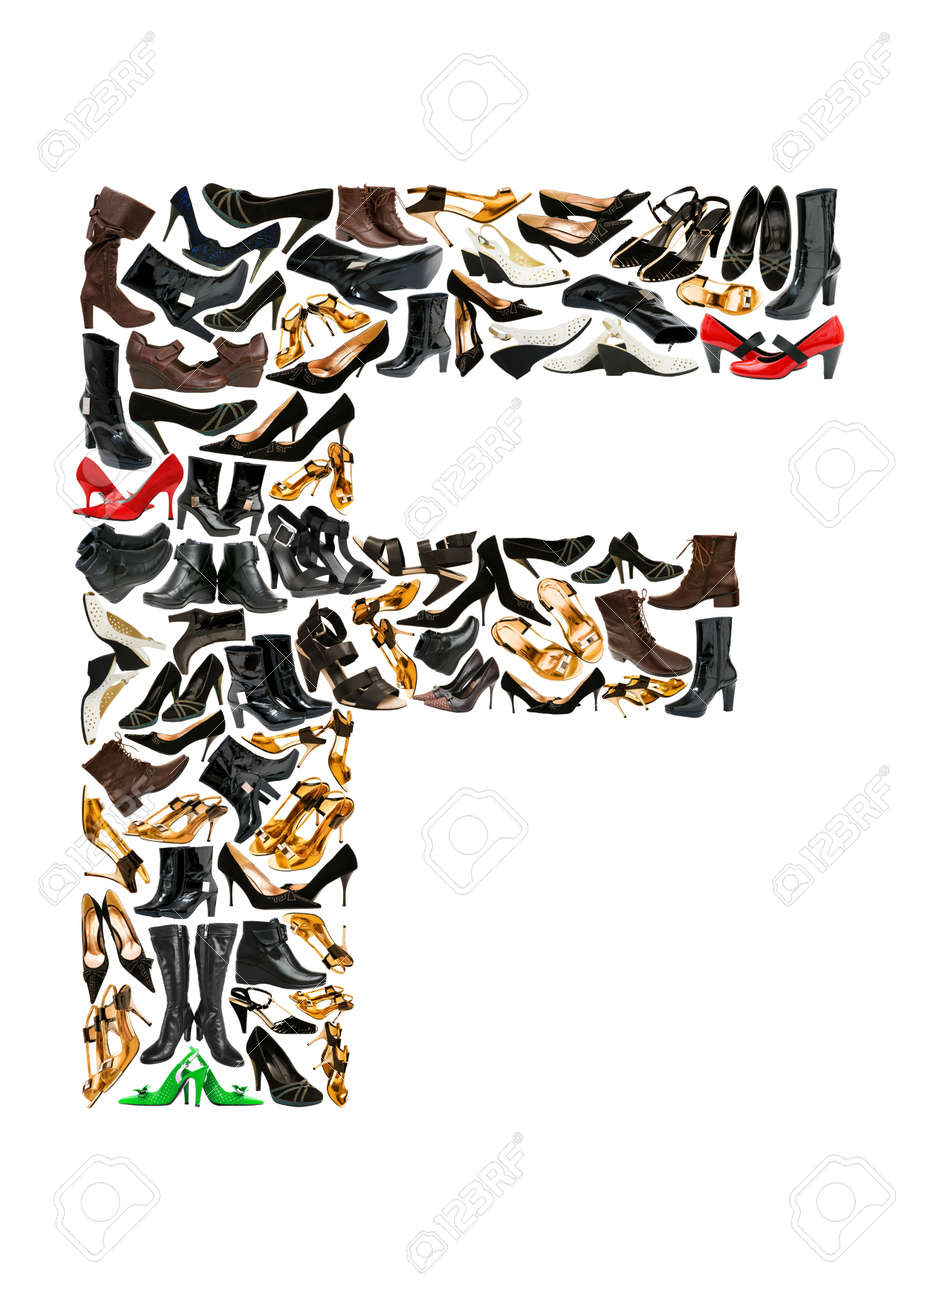 Font made of hundreds of shoes - Letter F Stock Photo - 8947541